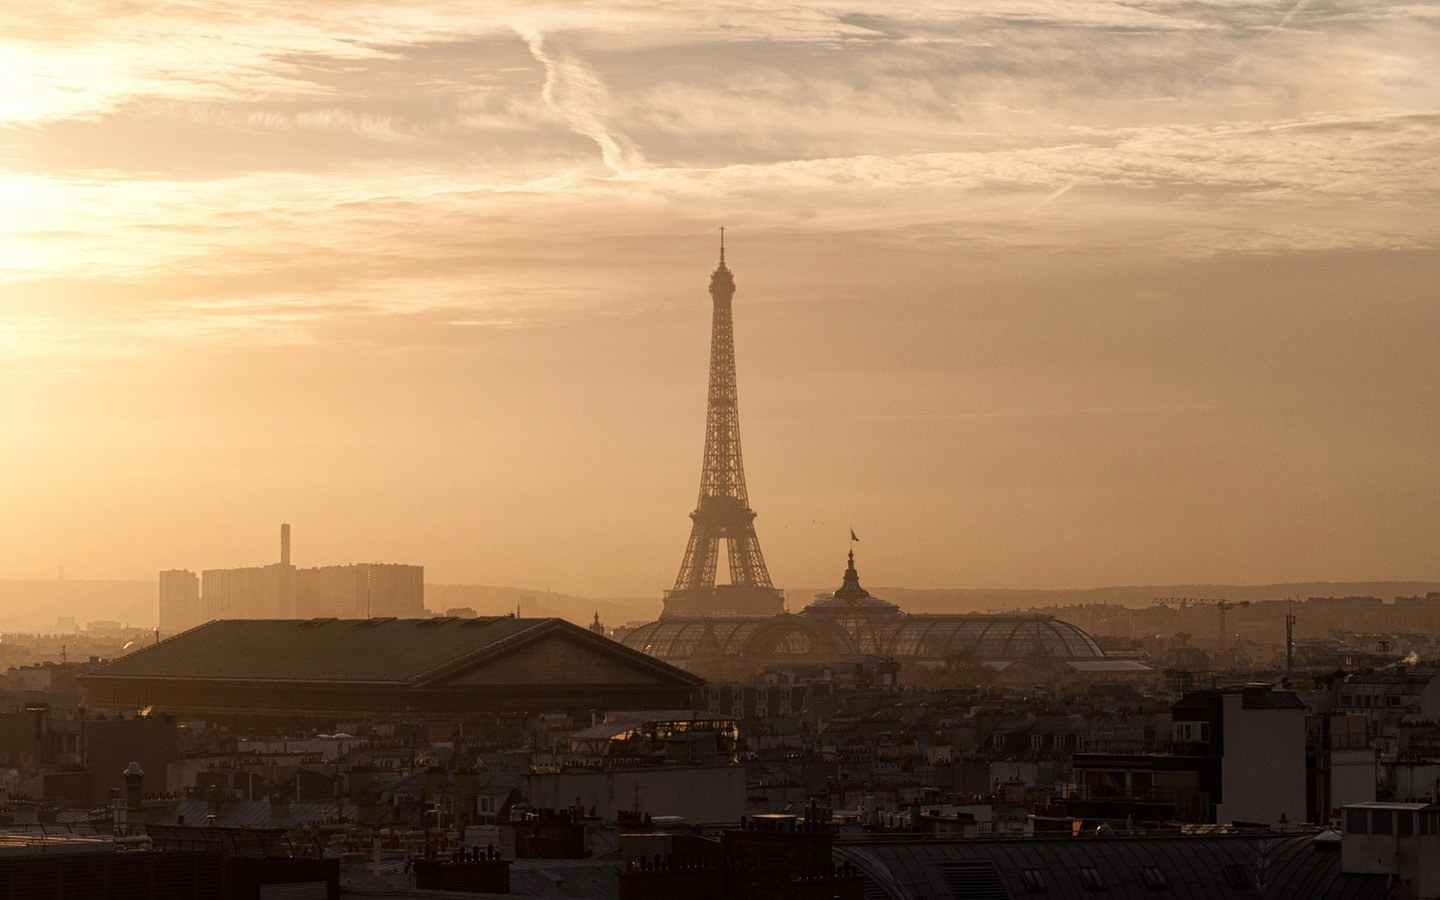 Sunset views of the Eiffel Tower from the top of Galeries Lafayette Haussmann, Paris